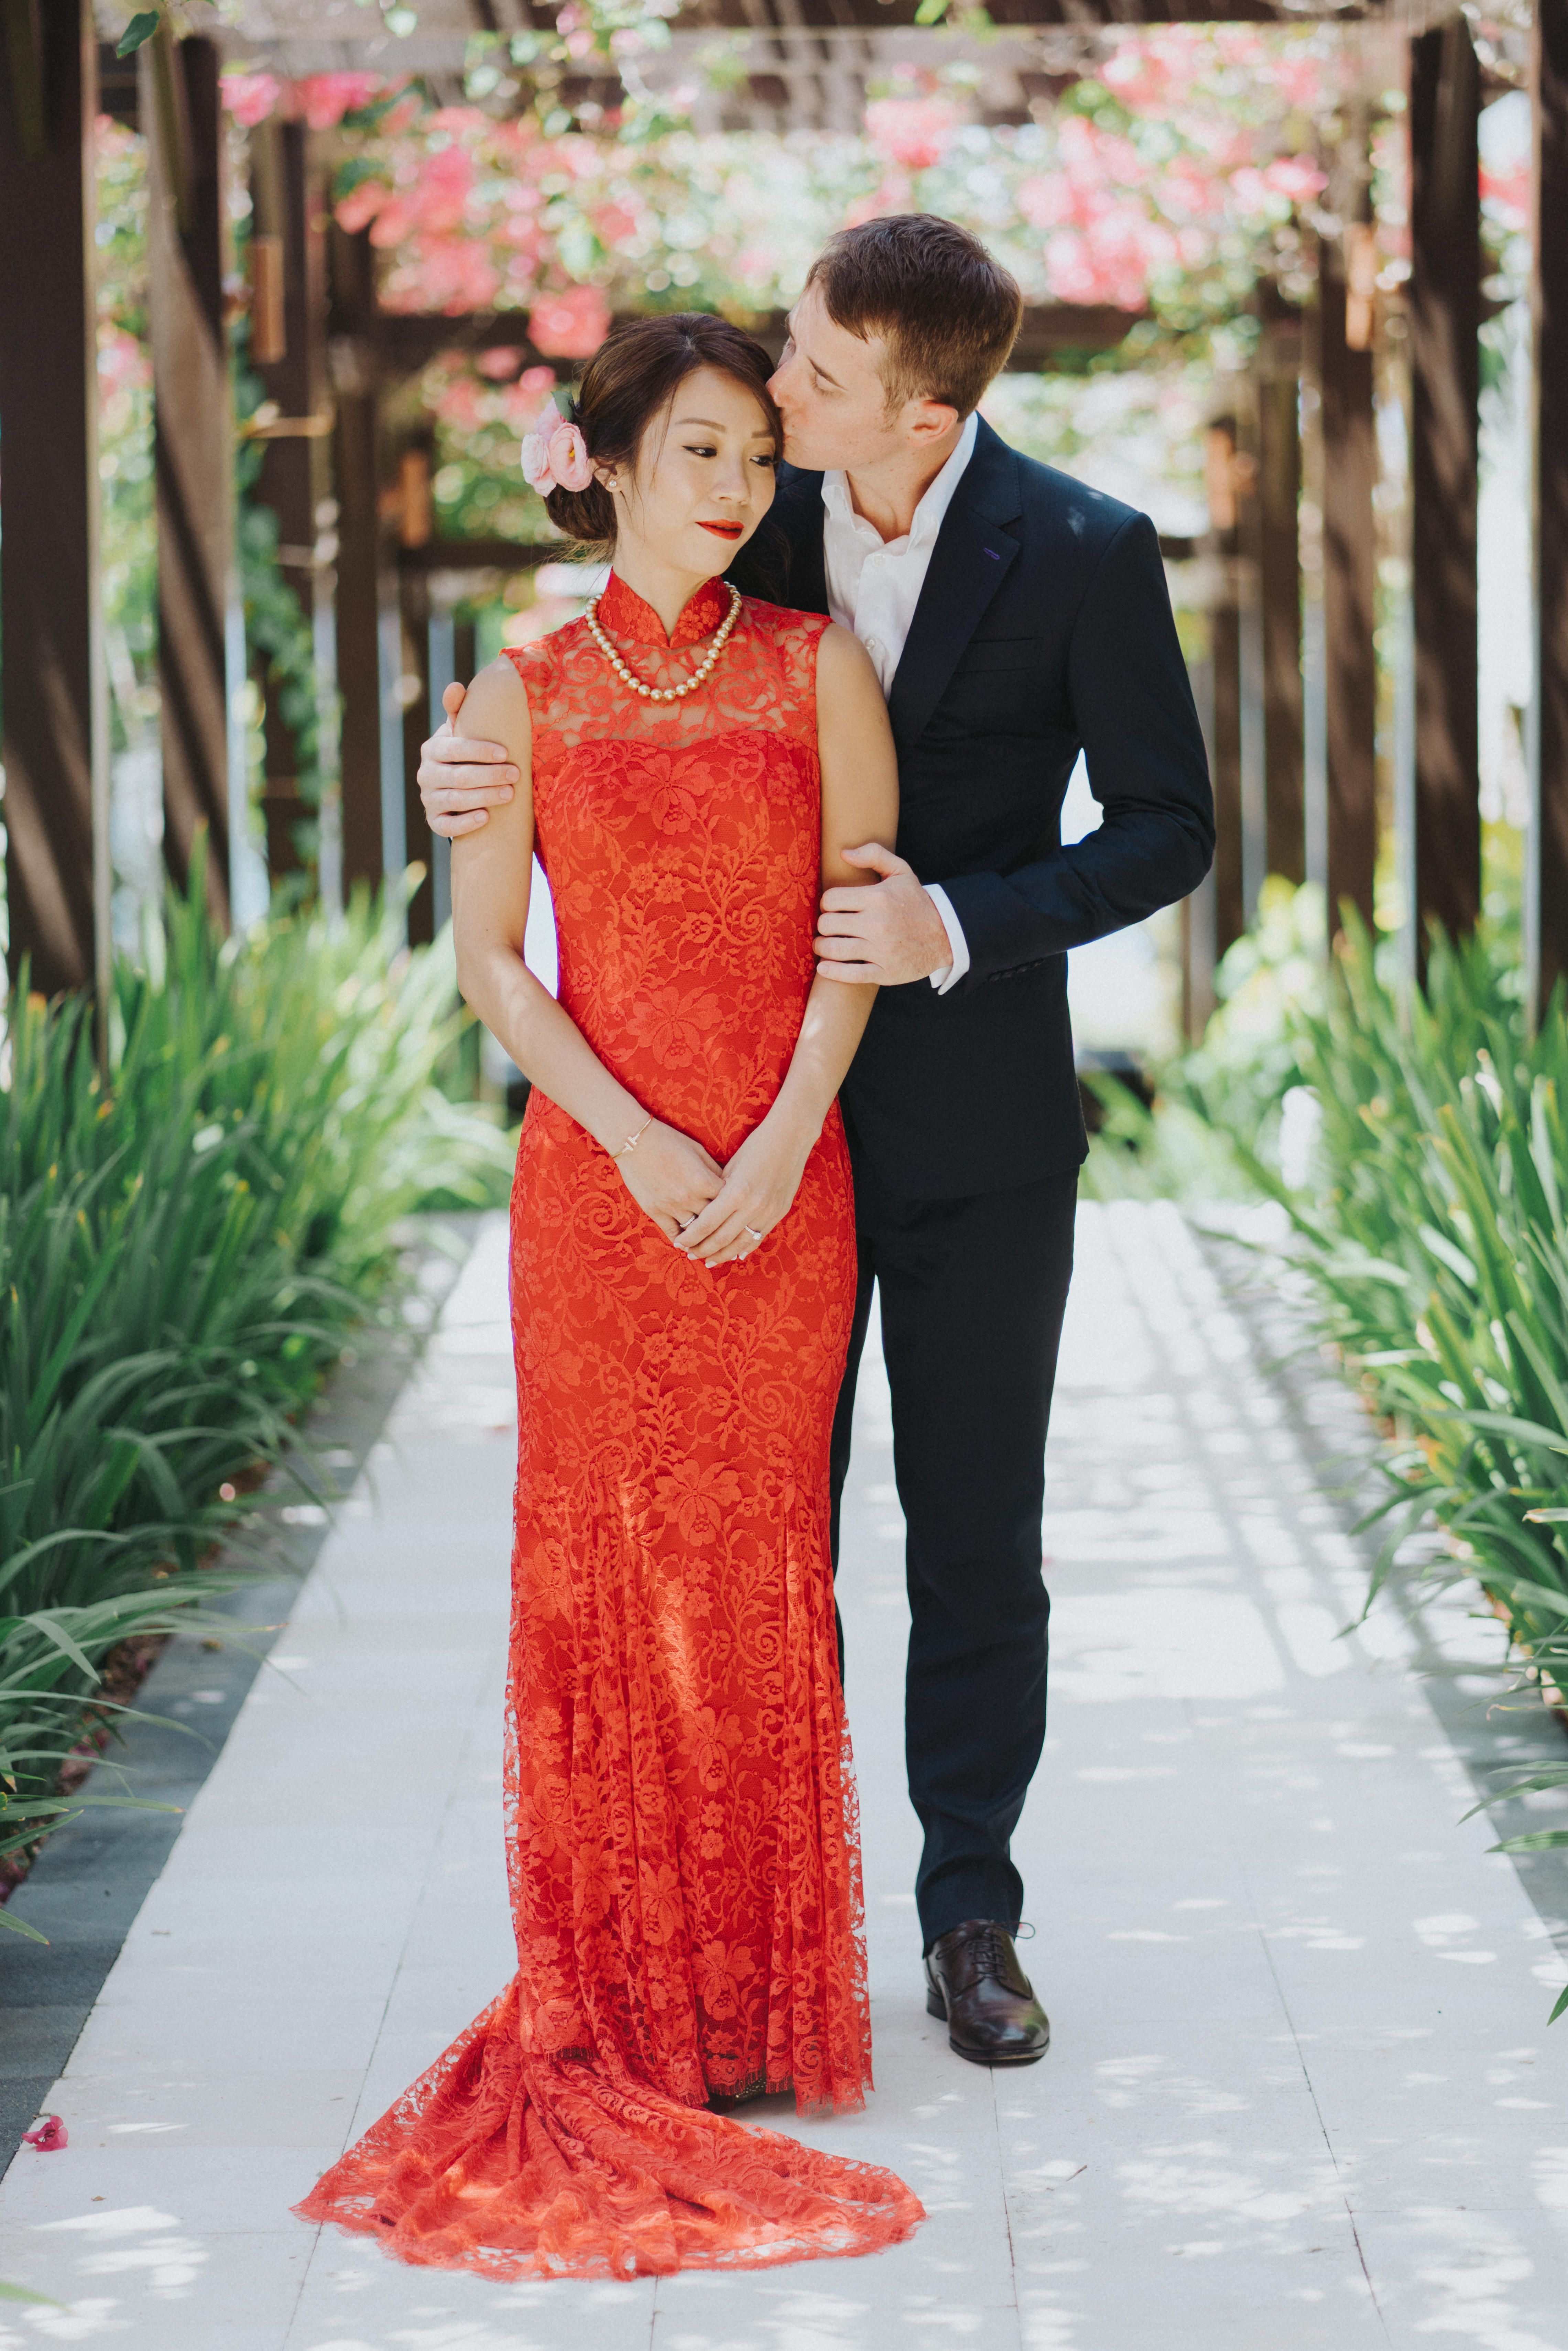 Red French Lace Wedding Cheongsam Mothers Gowns Plus Size Evening Gown French Lace Wedding [ 6837 x 4560 Pixel ]